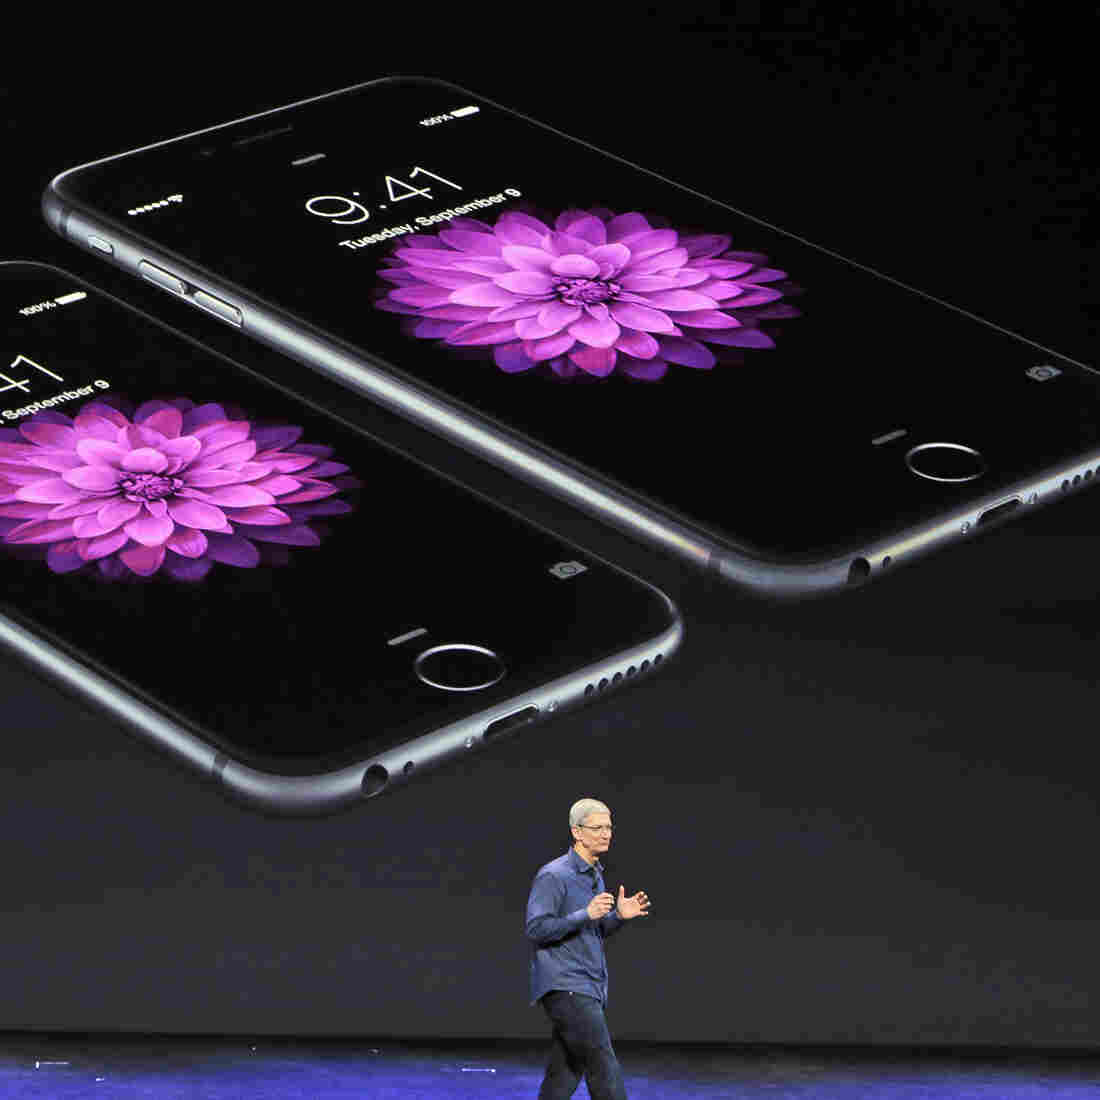 Apple Sold 30,000 iPhones An Hour Last Quarter, Scored Record Profits